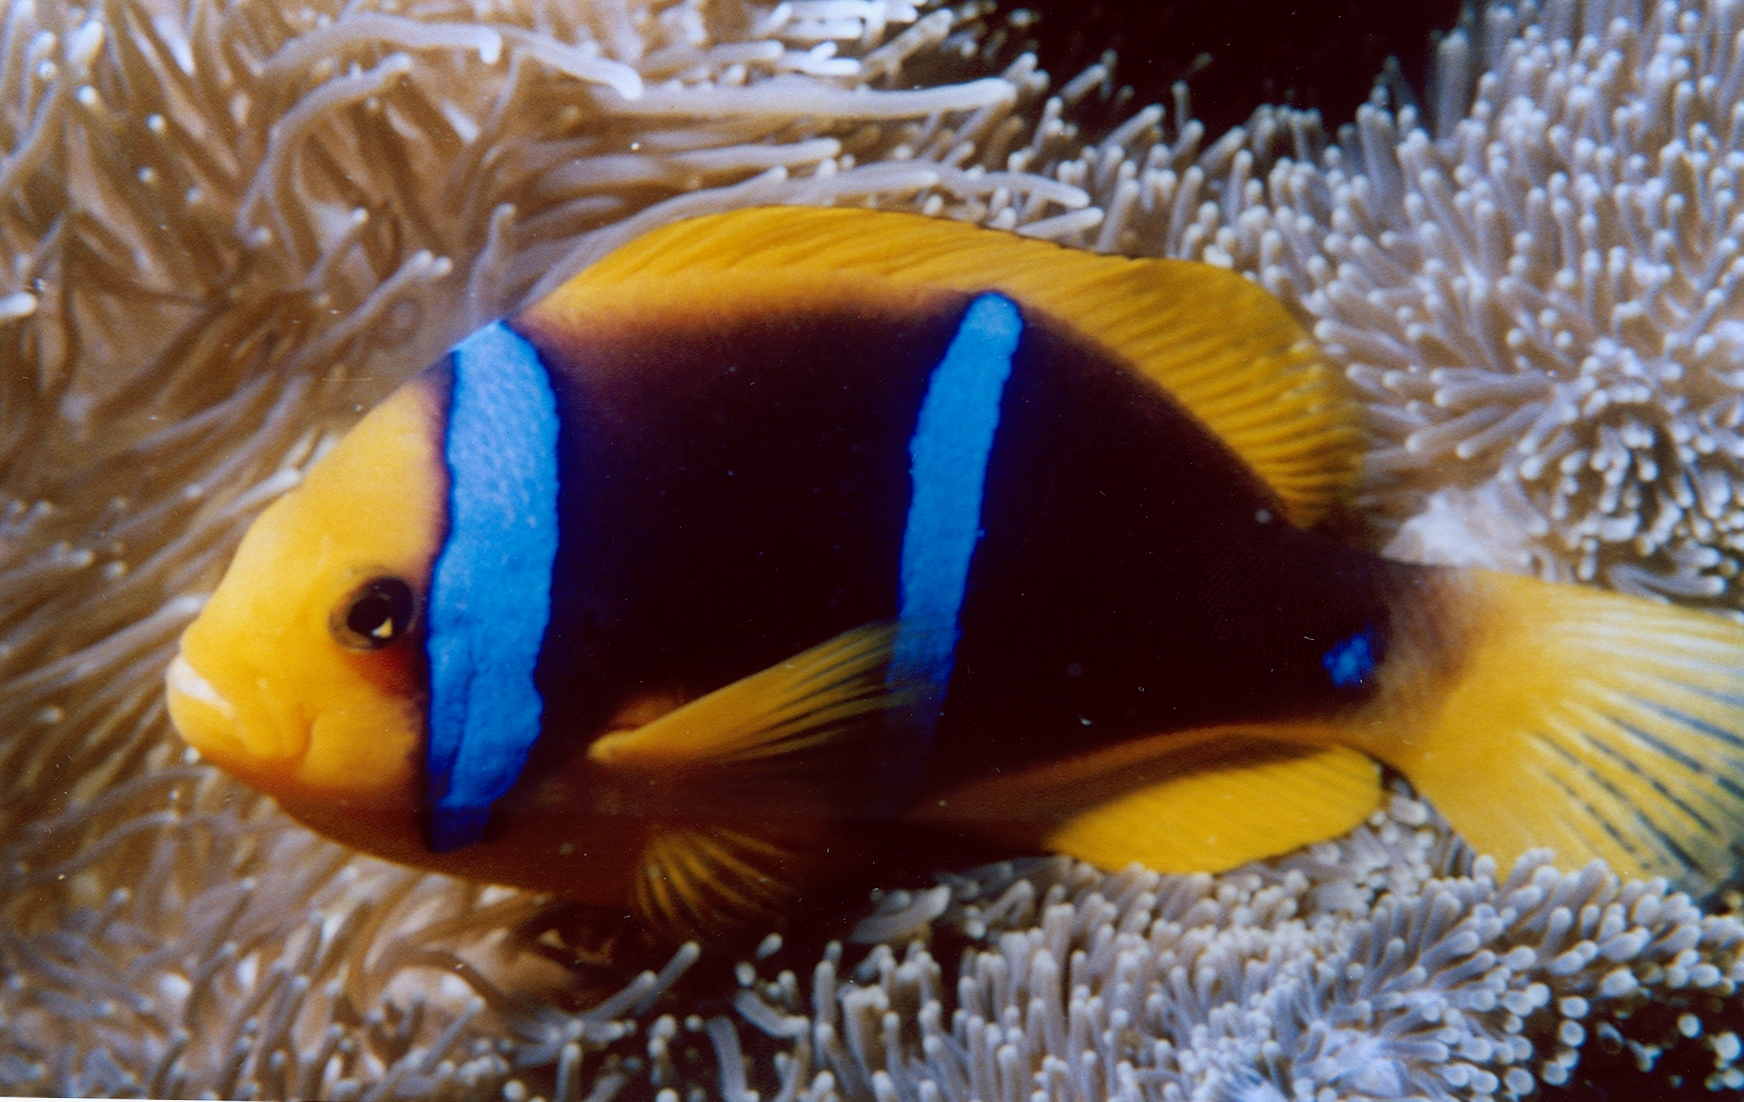 clownfish By David Burdick Public domain, via Wikimedia Commons